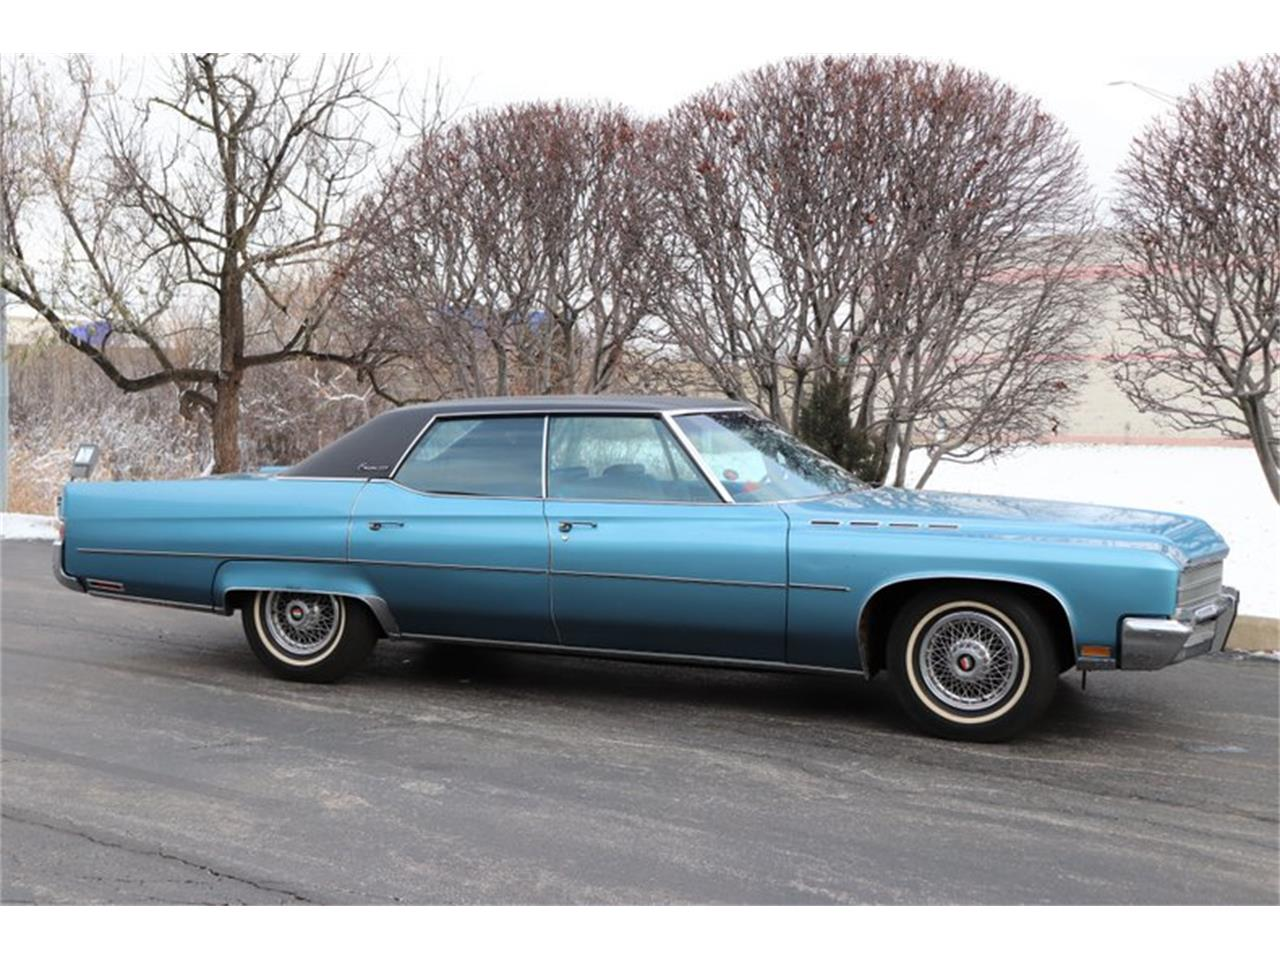 1971 buick electra for sale classiccars com cc 1166794 1971 Buick Electra Coupe large picture of \u002771 electra p0ay